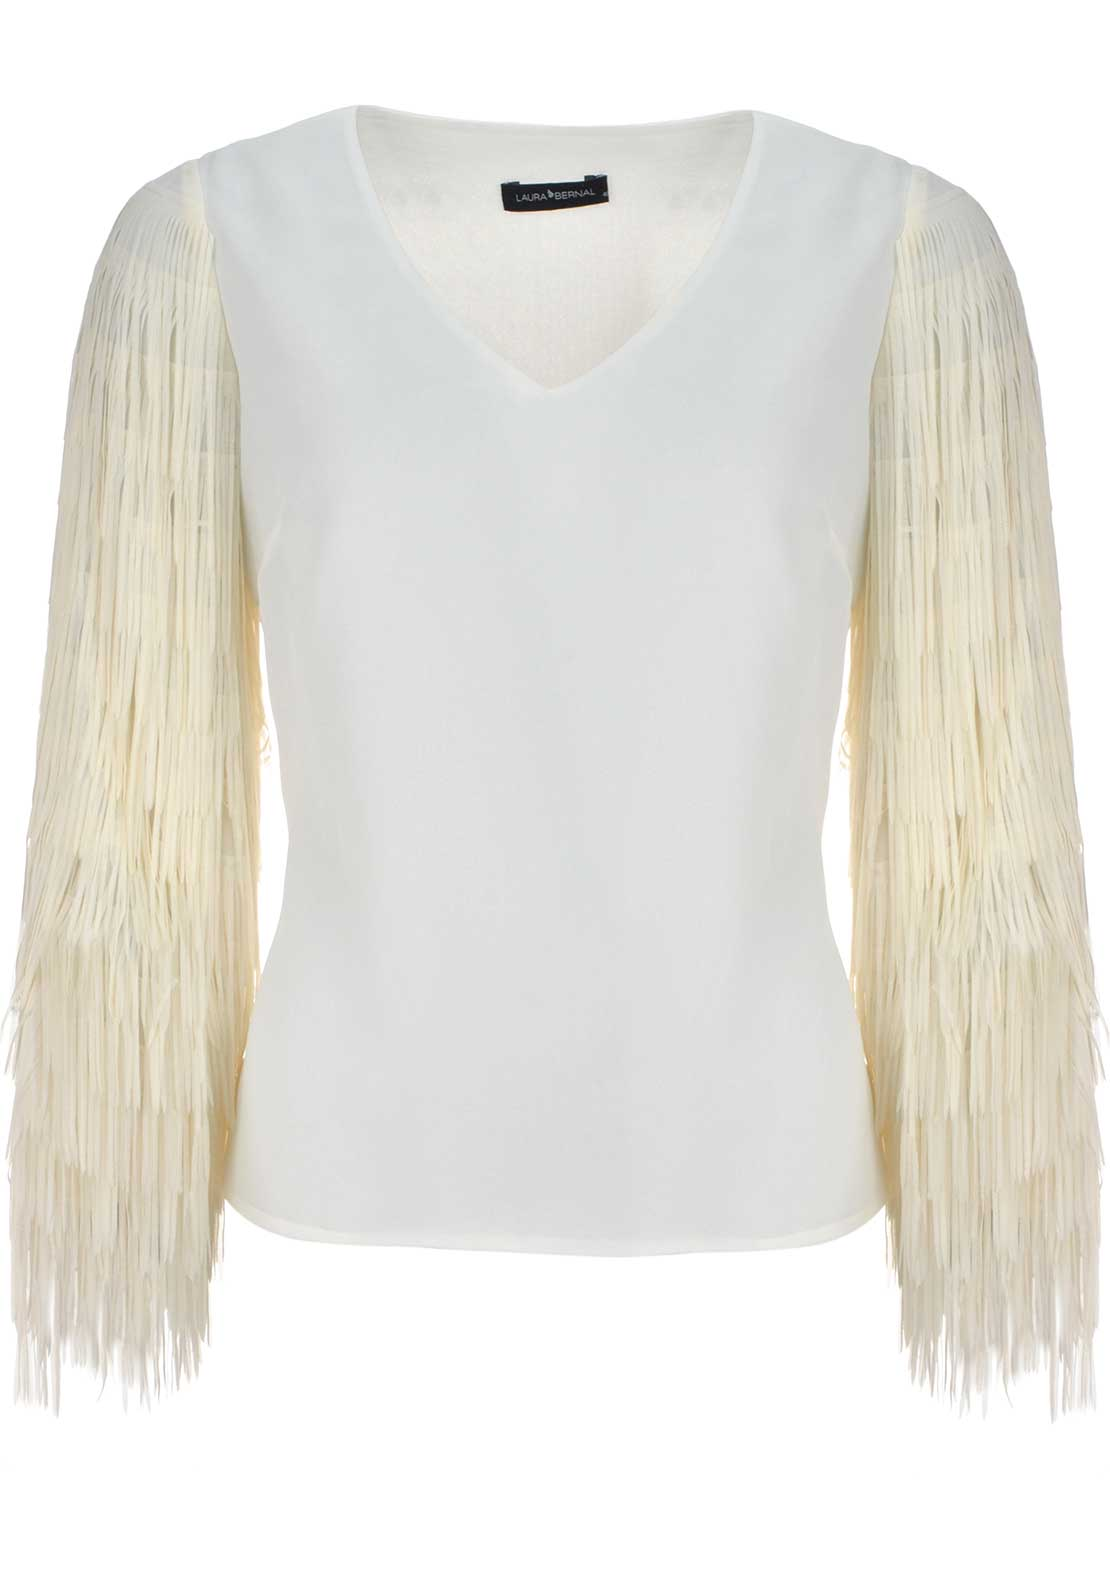 Laura Bernal Fringed Long Sleeve Top, Ivory